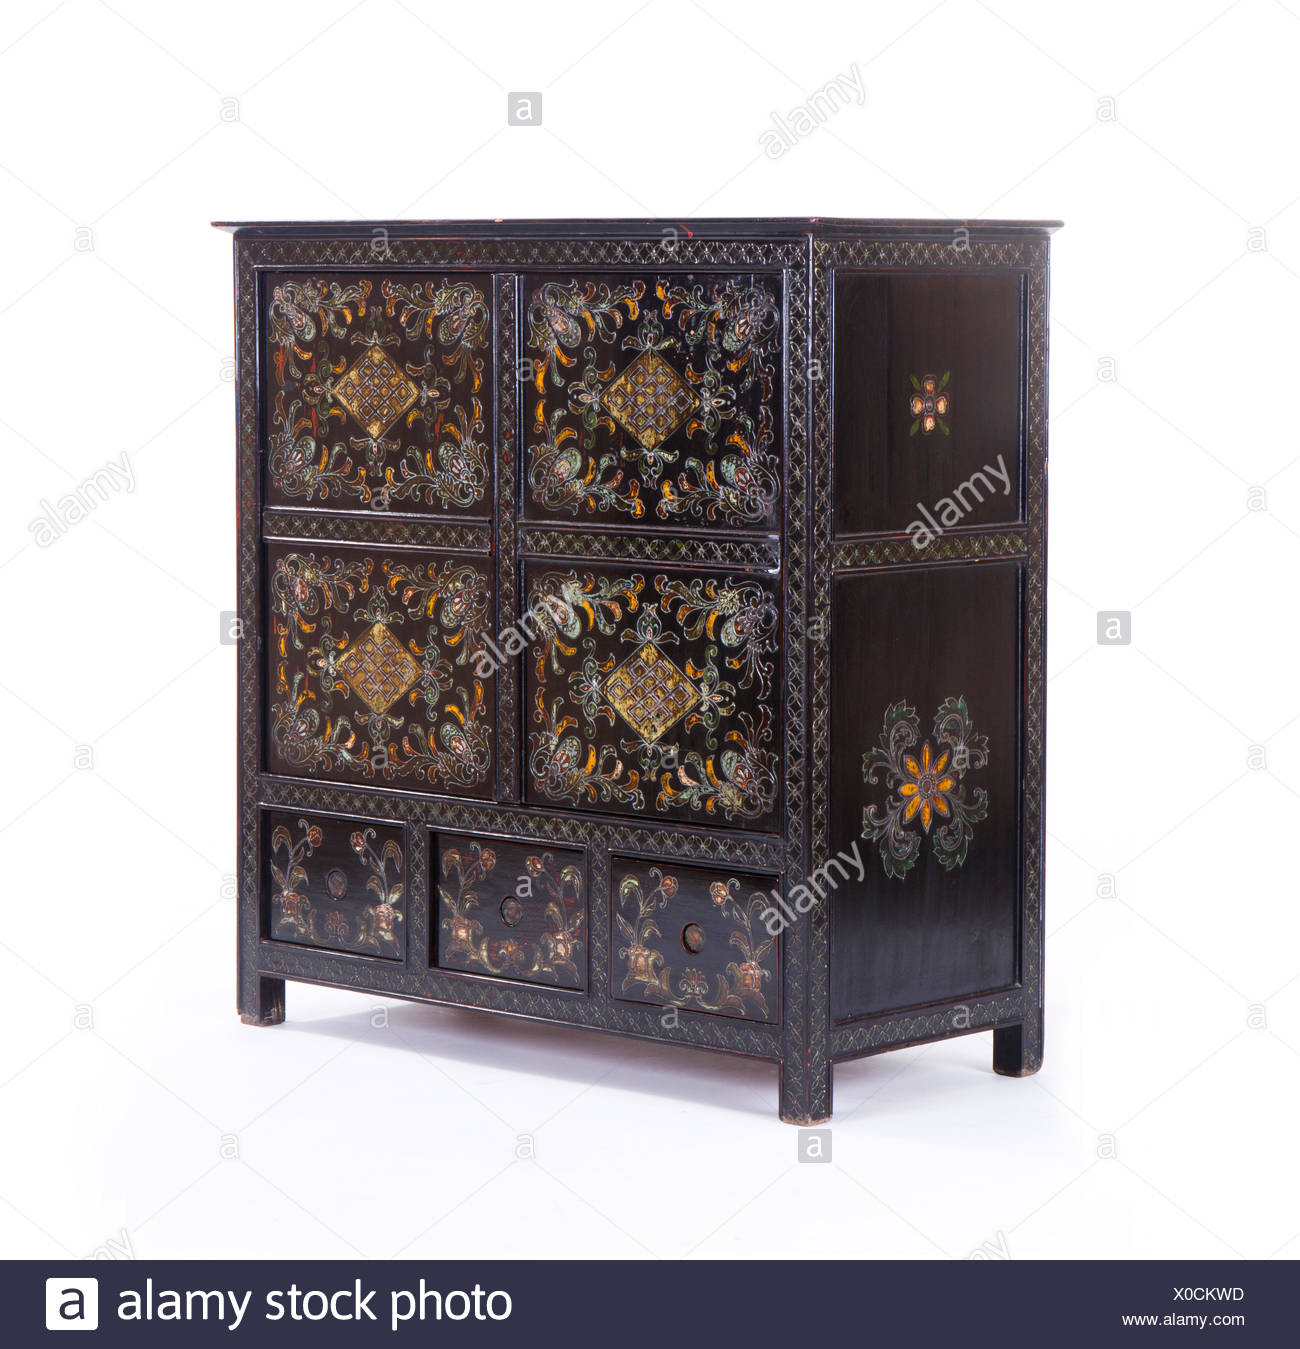 Antique Chinese cabinets - Antique Chinese Cabinets Stock Photo: 275644921 - Alamy